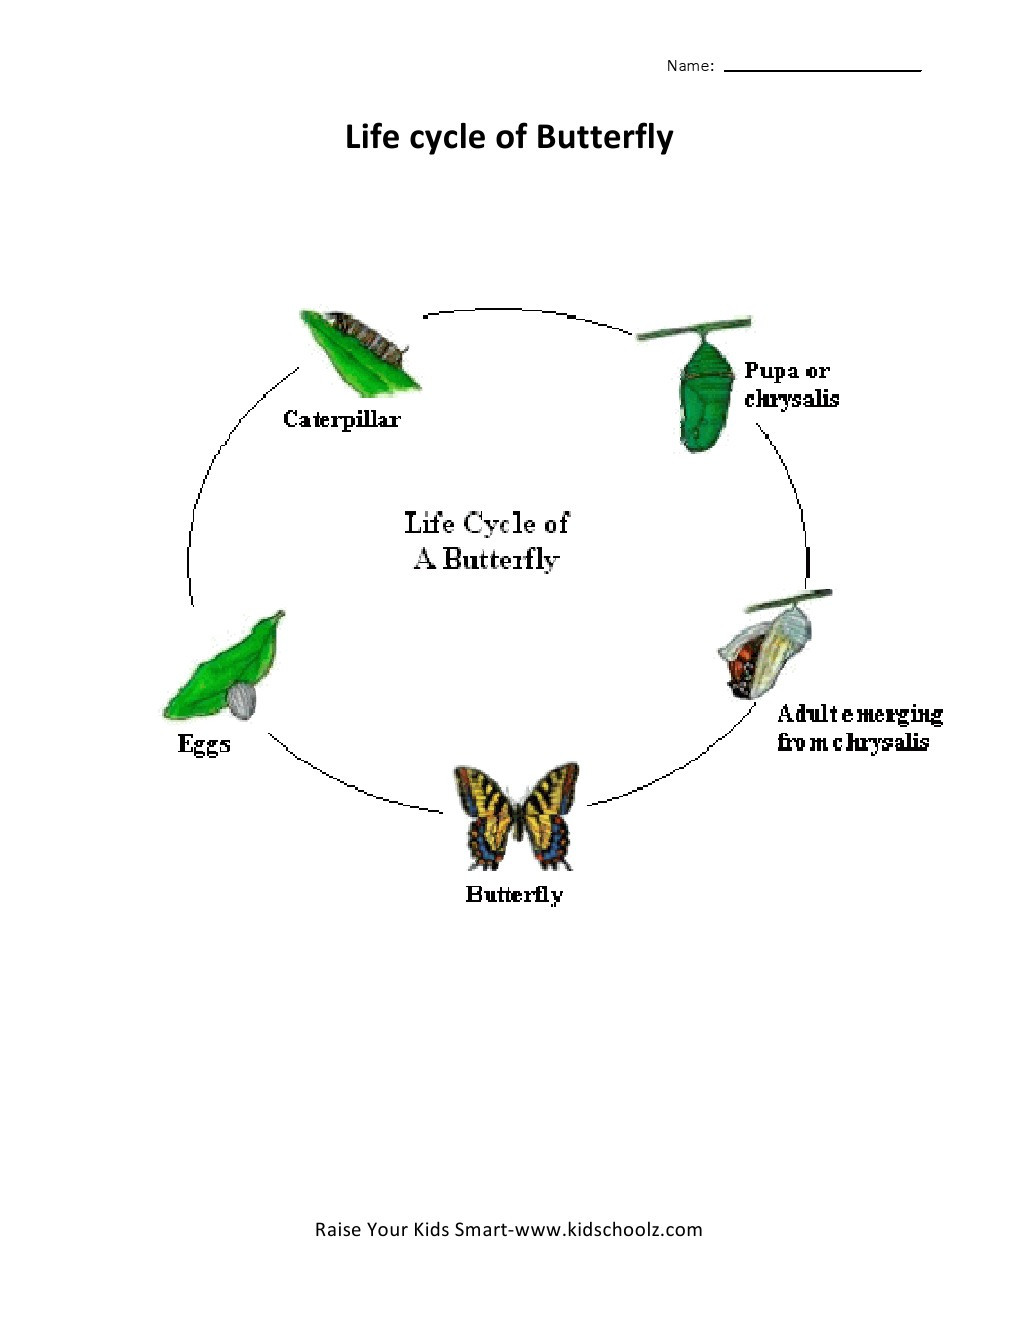 Butterfly Life Cycle Worksheet 2 Grade 2 butterfly Life Cycle Worksheet Kidschoolz